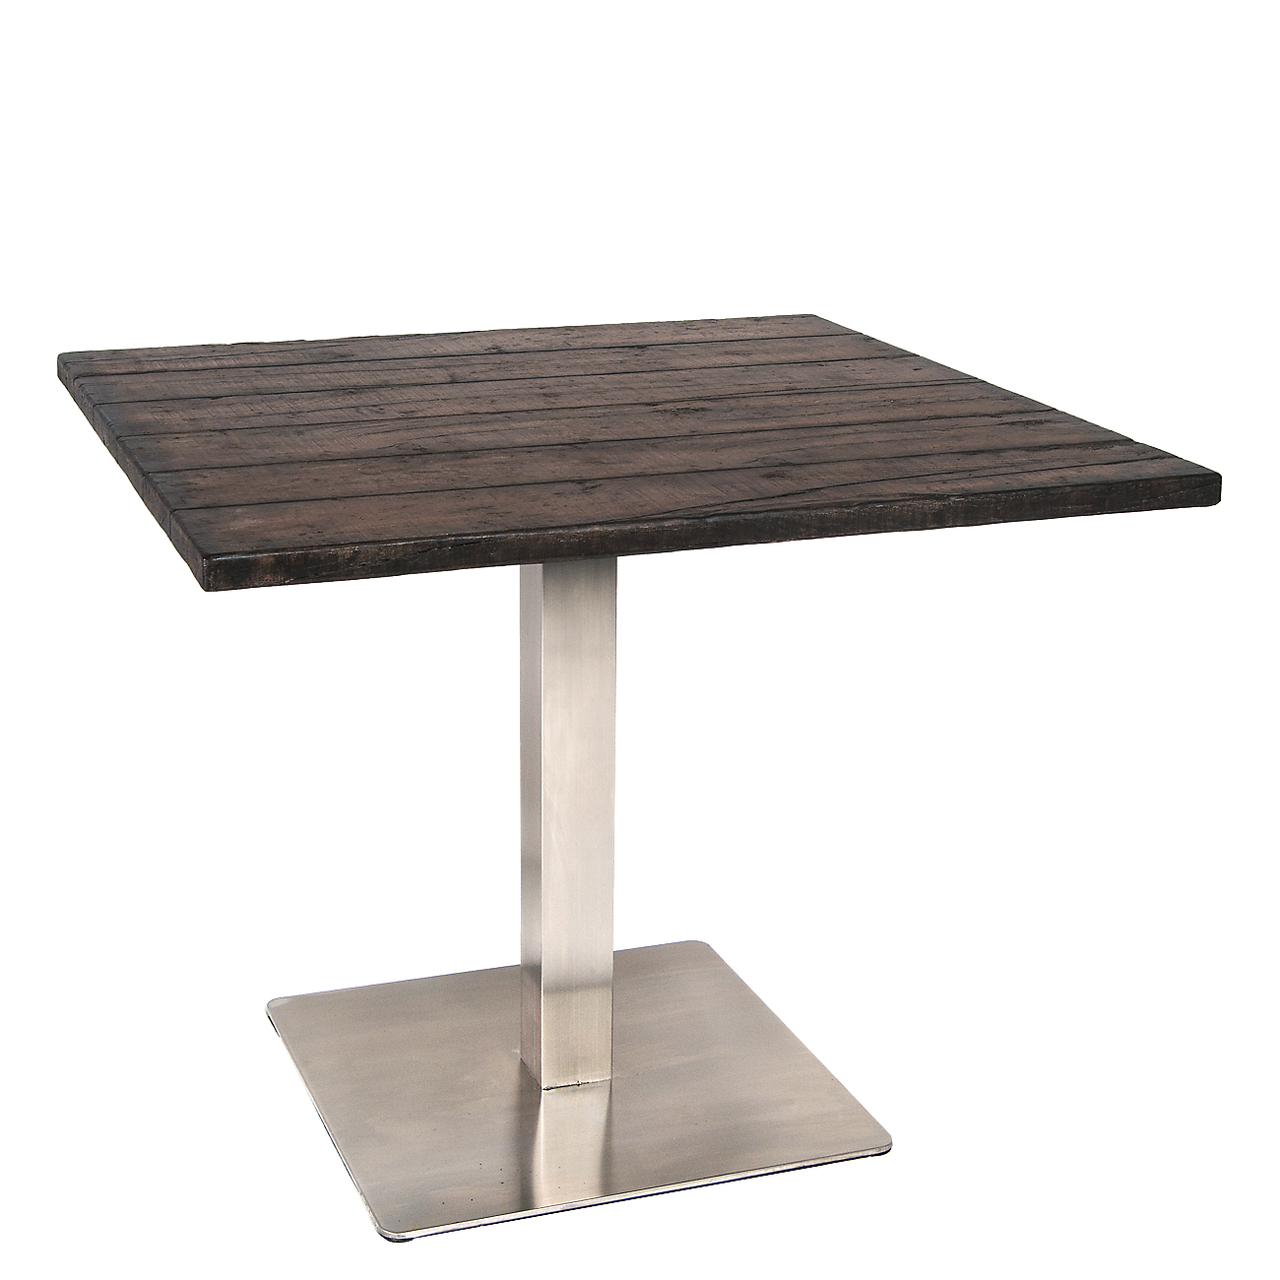 Roslyn Outdoor Table 30quot x 30quot Seats and Stools : OTC303064872146135628112801280 from www.seatsandstools.com size 1280 x 1280 png 787kB